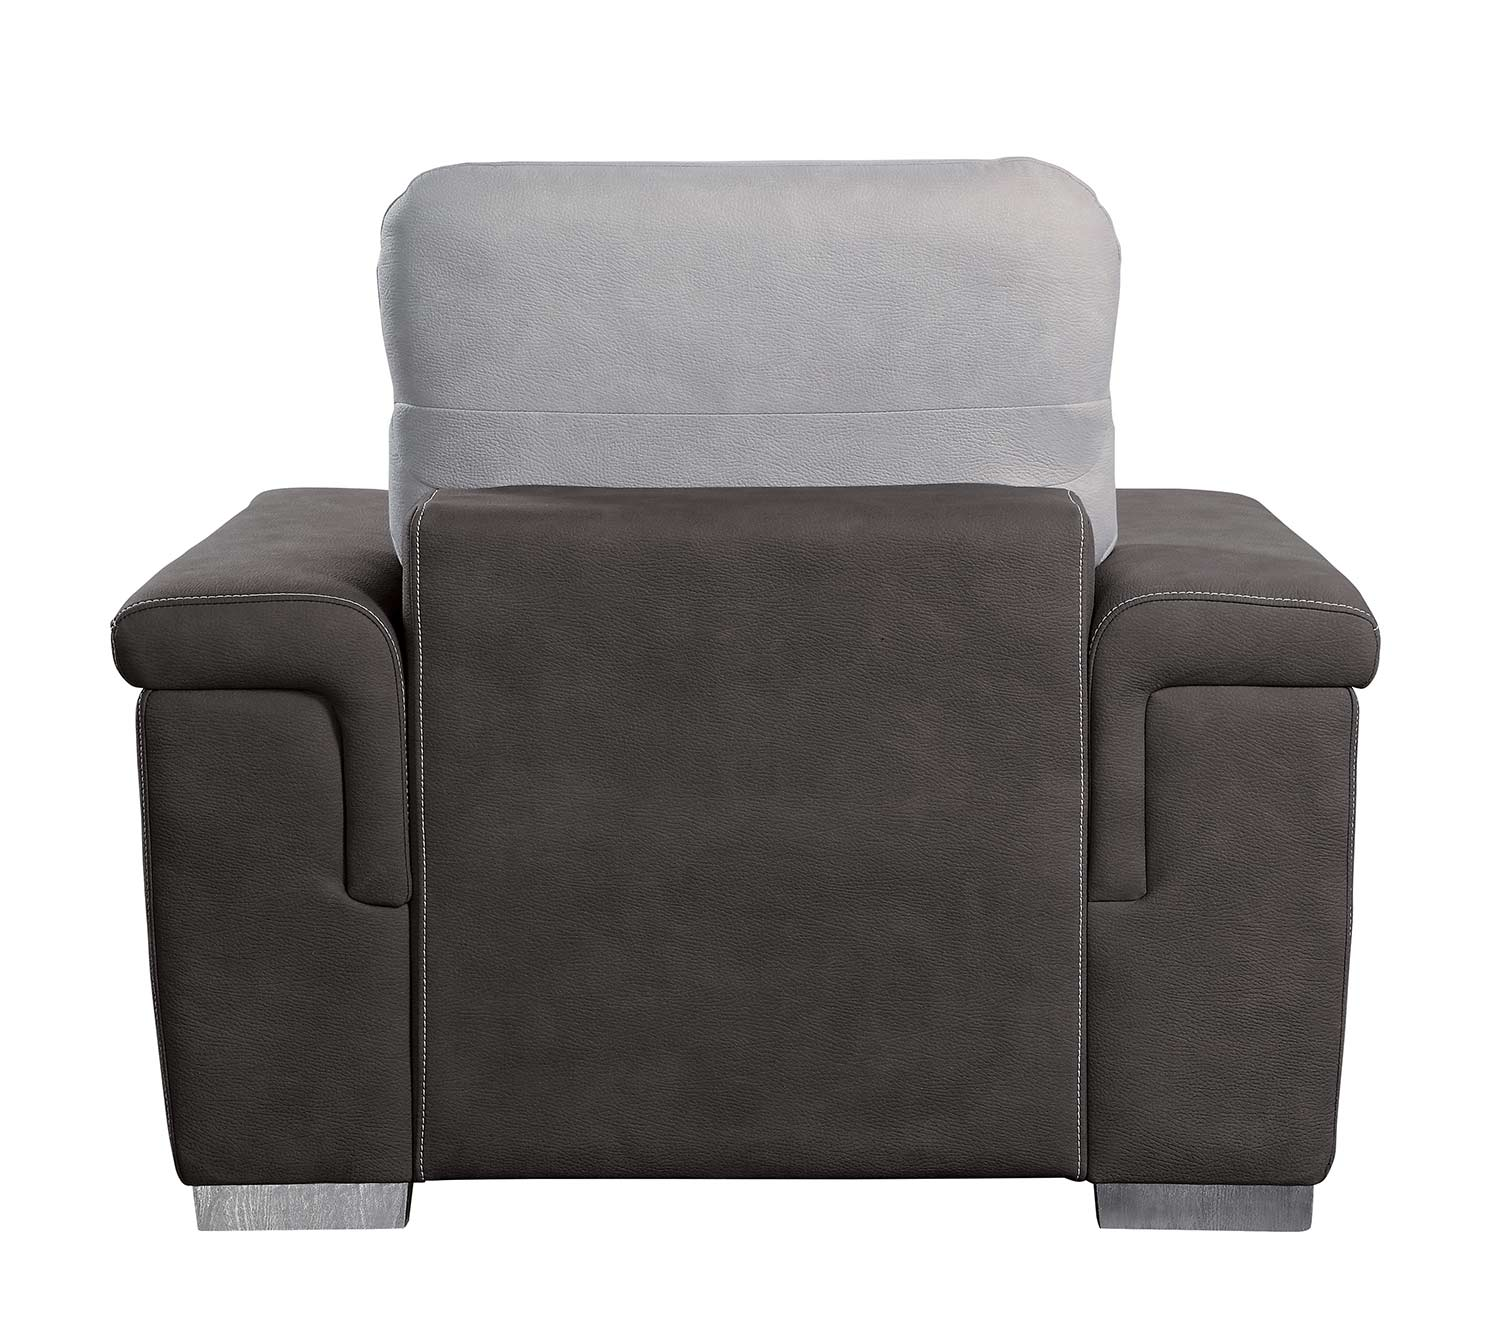 Homelegance Alfio Chair with Pull-out Ottoman - Silver/Chocolate